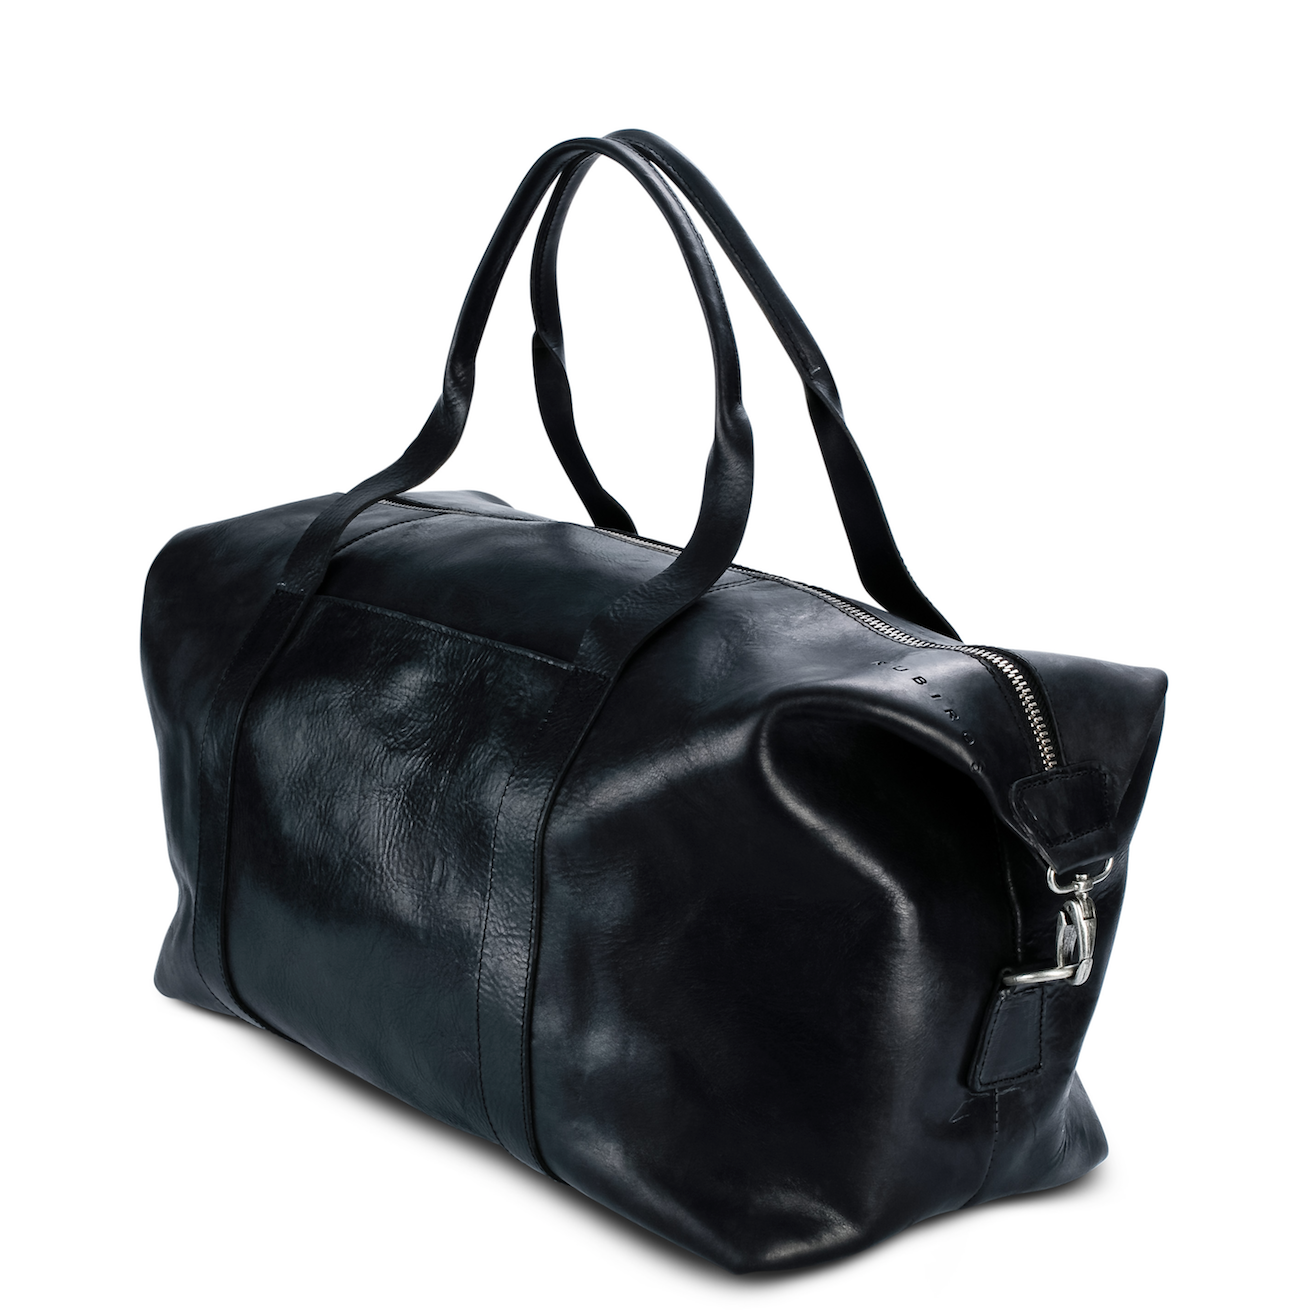 Calluna Weekender Bag in Black Leather